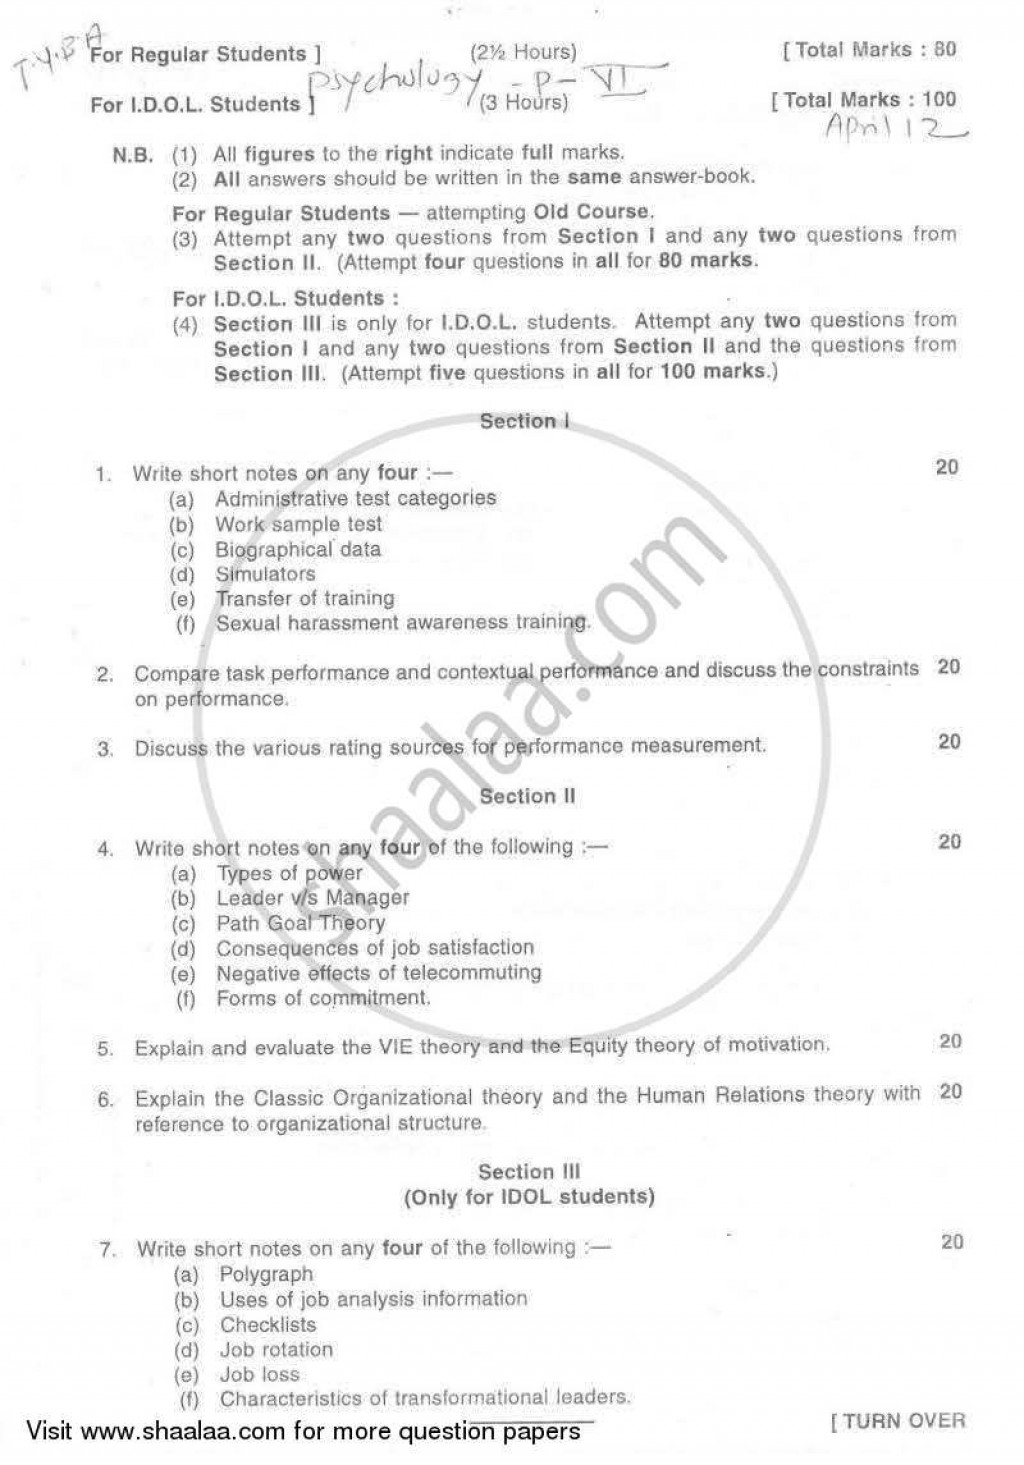 017 Psychologyearch Paper On Dreams University Of Mumbai Bachelor Industrial Organizational T Y Yearly Pattern Semester Tyba 2011 29a03925dfc524f2aa4cb10e4d3da996a Singular Psychology Research Topics Questions News Articles Large